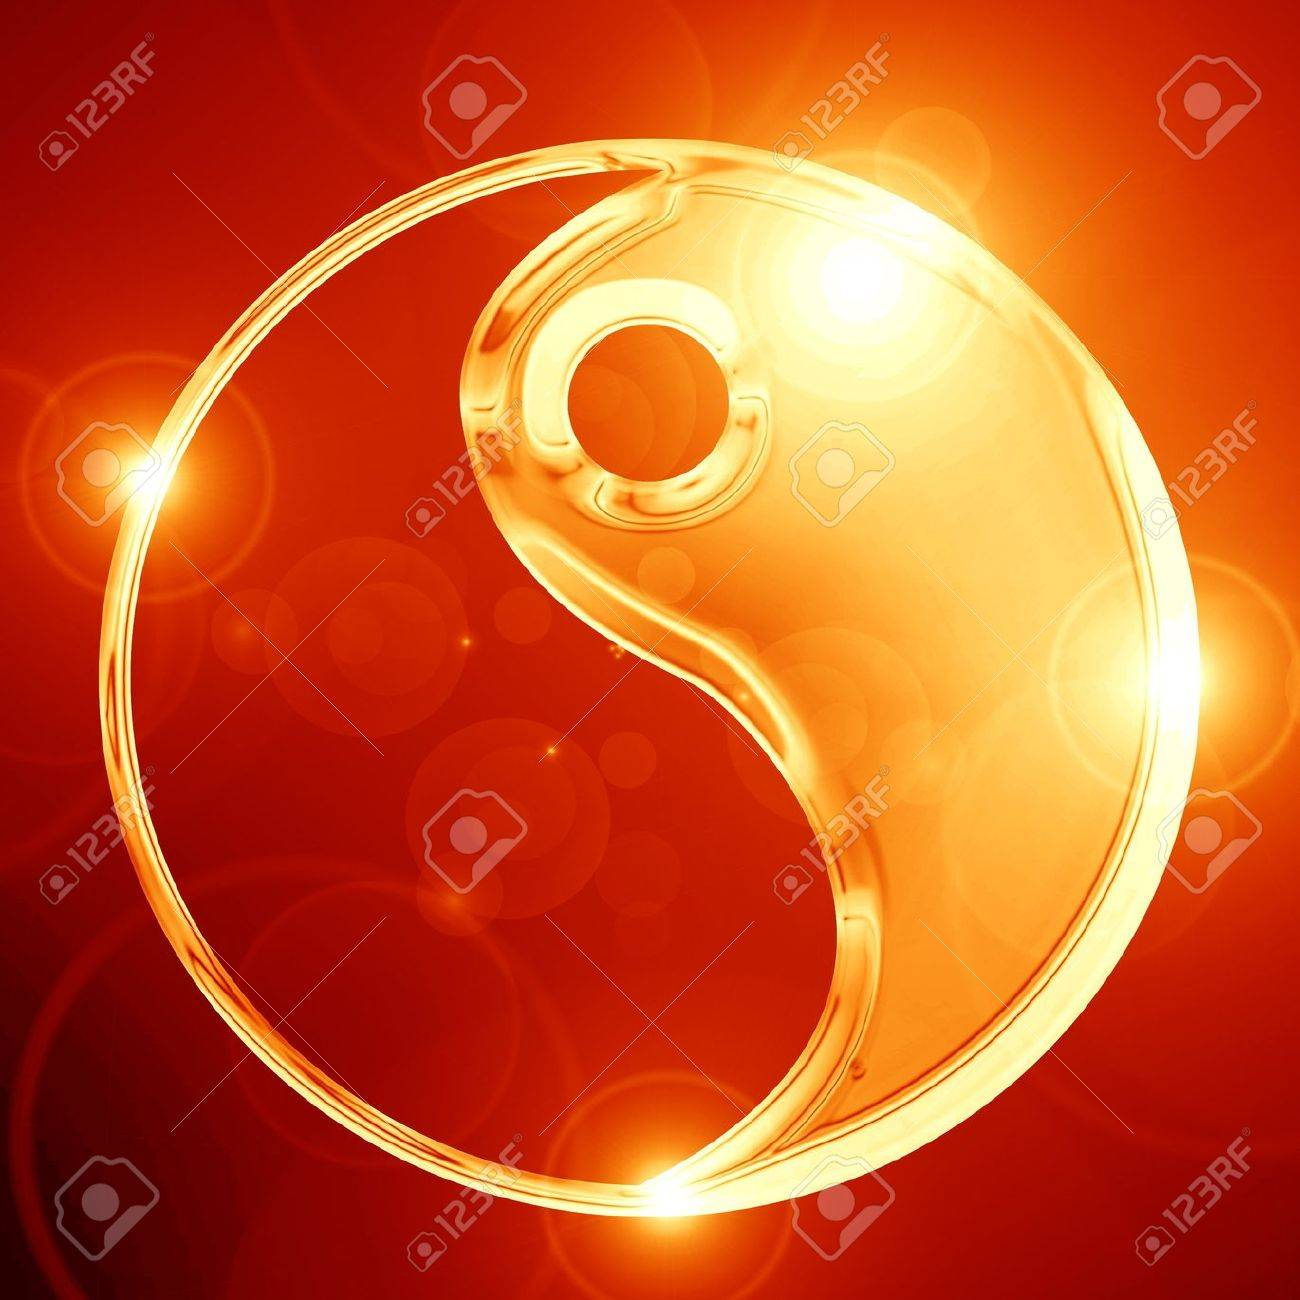 Yin Yang sign on a glowing background Stock Photo - 15009313